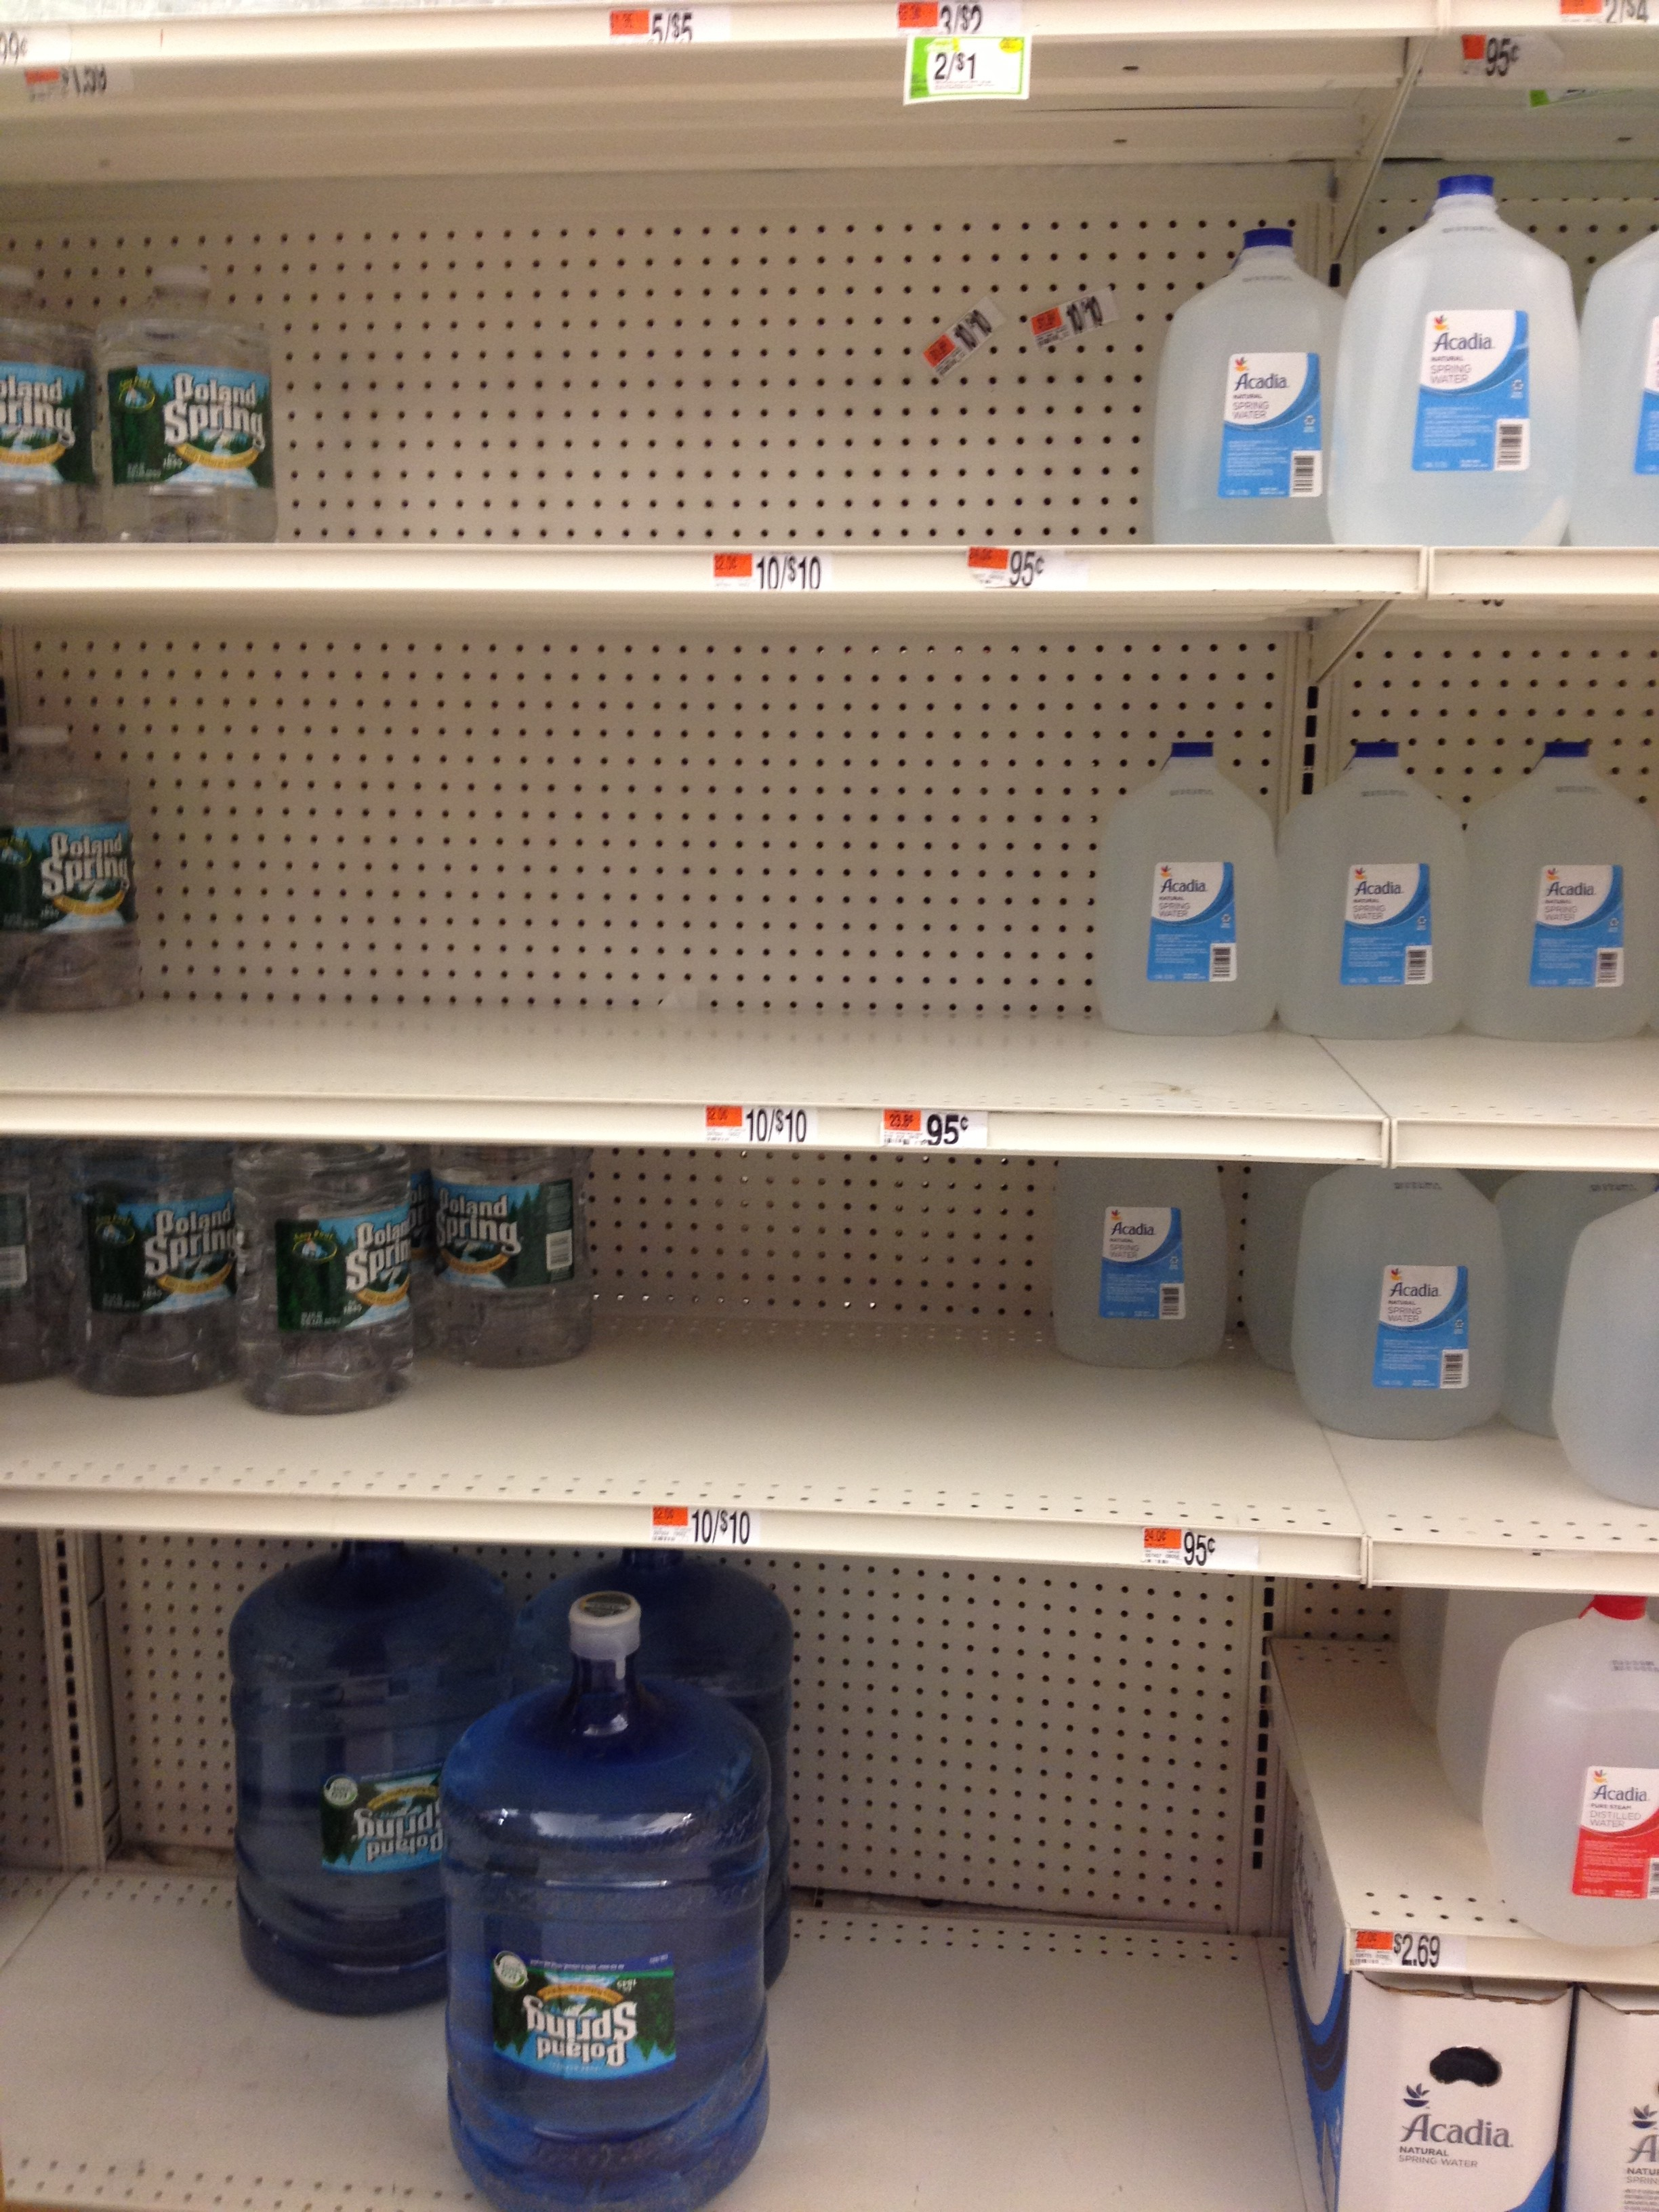 Water was scarce on Thursday night. Photo by Chelsea Hirsch.